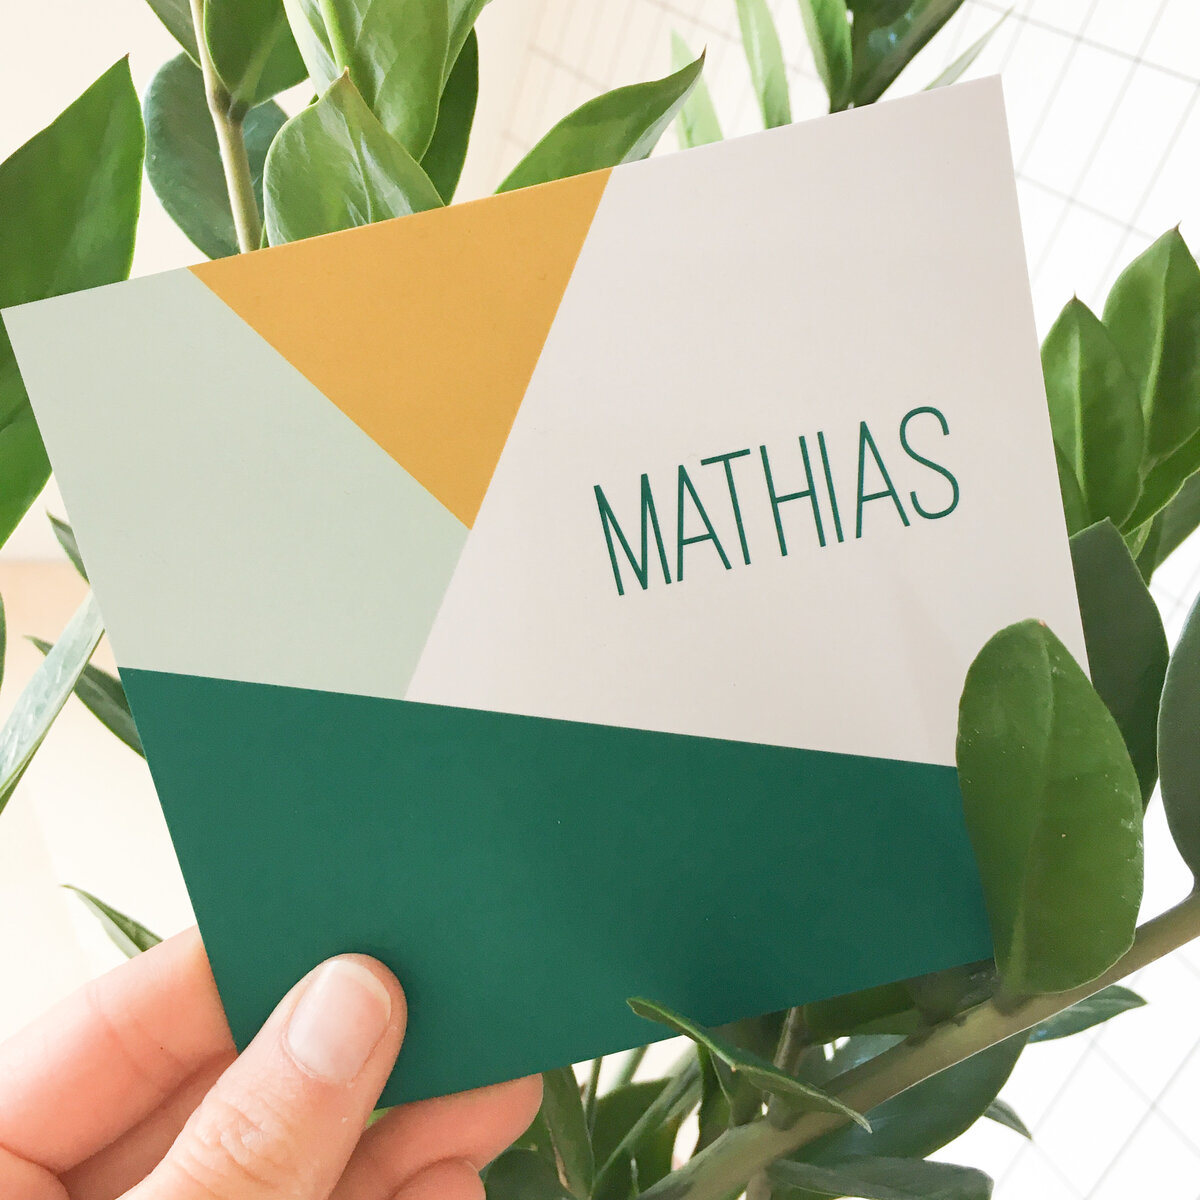 10-01_Mathias